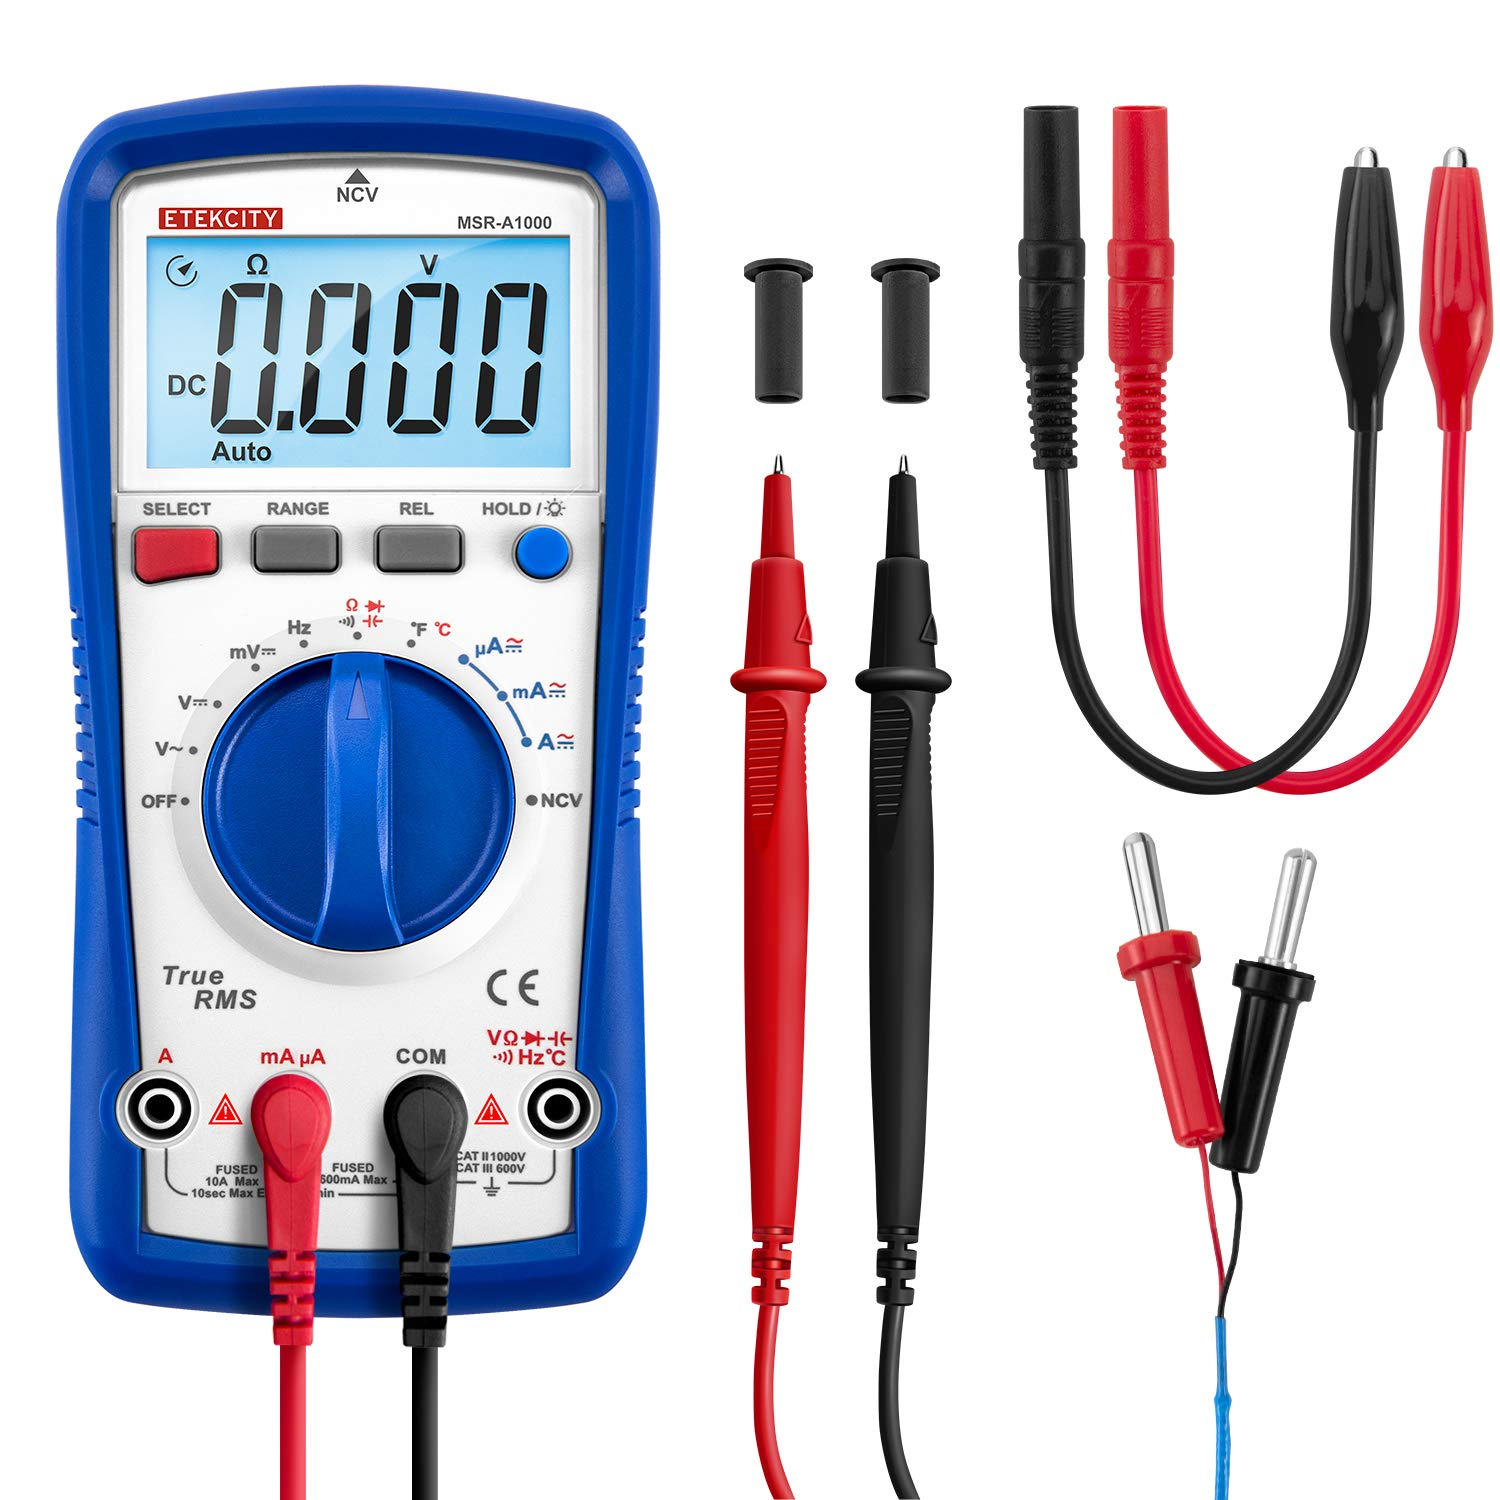 Etekcity Digital Multimeter MSR-A1000, TRMS 6000 Counts Auto-Ranging AC/DC Amp Ohm Voltage Tester Meter with Temperature Frequency Resistance Continuity Capacitance REL Diode Test by Etekcity (Image #1)